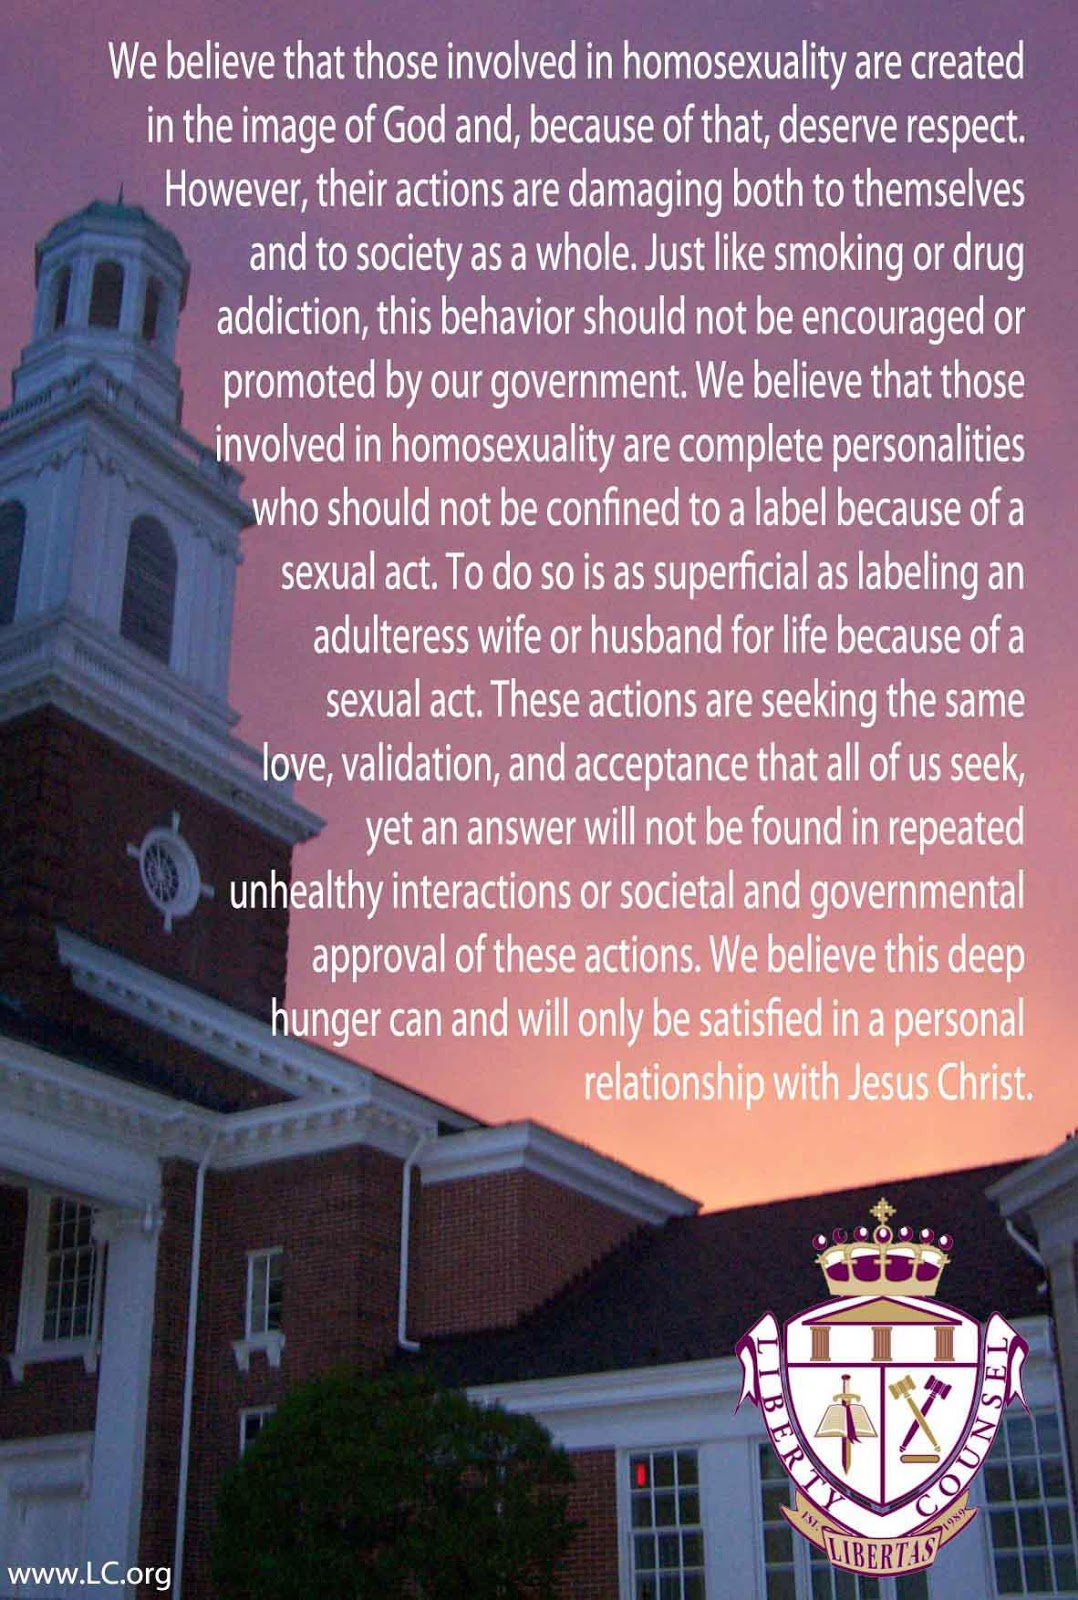 We believe that those involved in homosexuality are created in the image of God and, because of that, deserve respect. However, their actions are damaging both to themselves and society as a whole. Just like smoking or drug addiction, this behavior should not be encouraged or promoted by our government. We believe that those involved in homosexuality are complete personalities who should not be confined to a label because of a sexual act. To do so is to label an adulterous wife or husband for life because of a sexual act. These actions are seeking the same love, validation, and acceptance all of us seek, yet and answer will not be found in repeated unhealthy interactions or societal and governmental approval of these actions. We believe this deep hunger can and will only be satisfied in a personal relationship with Jesus Christ.